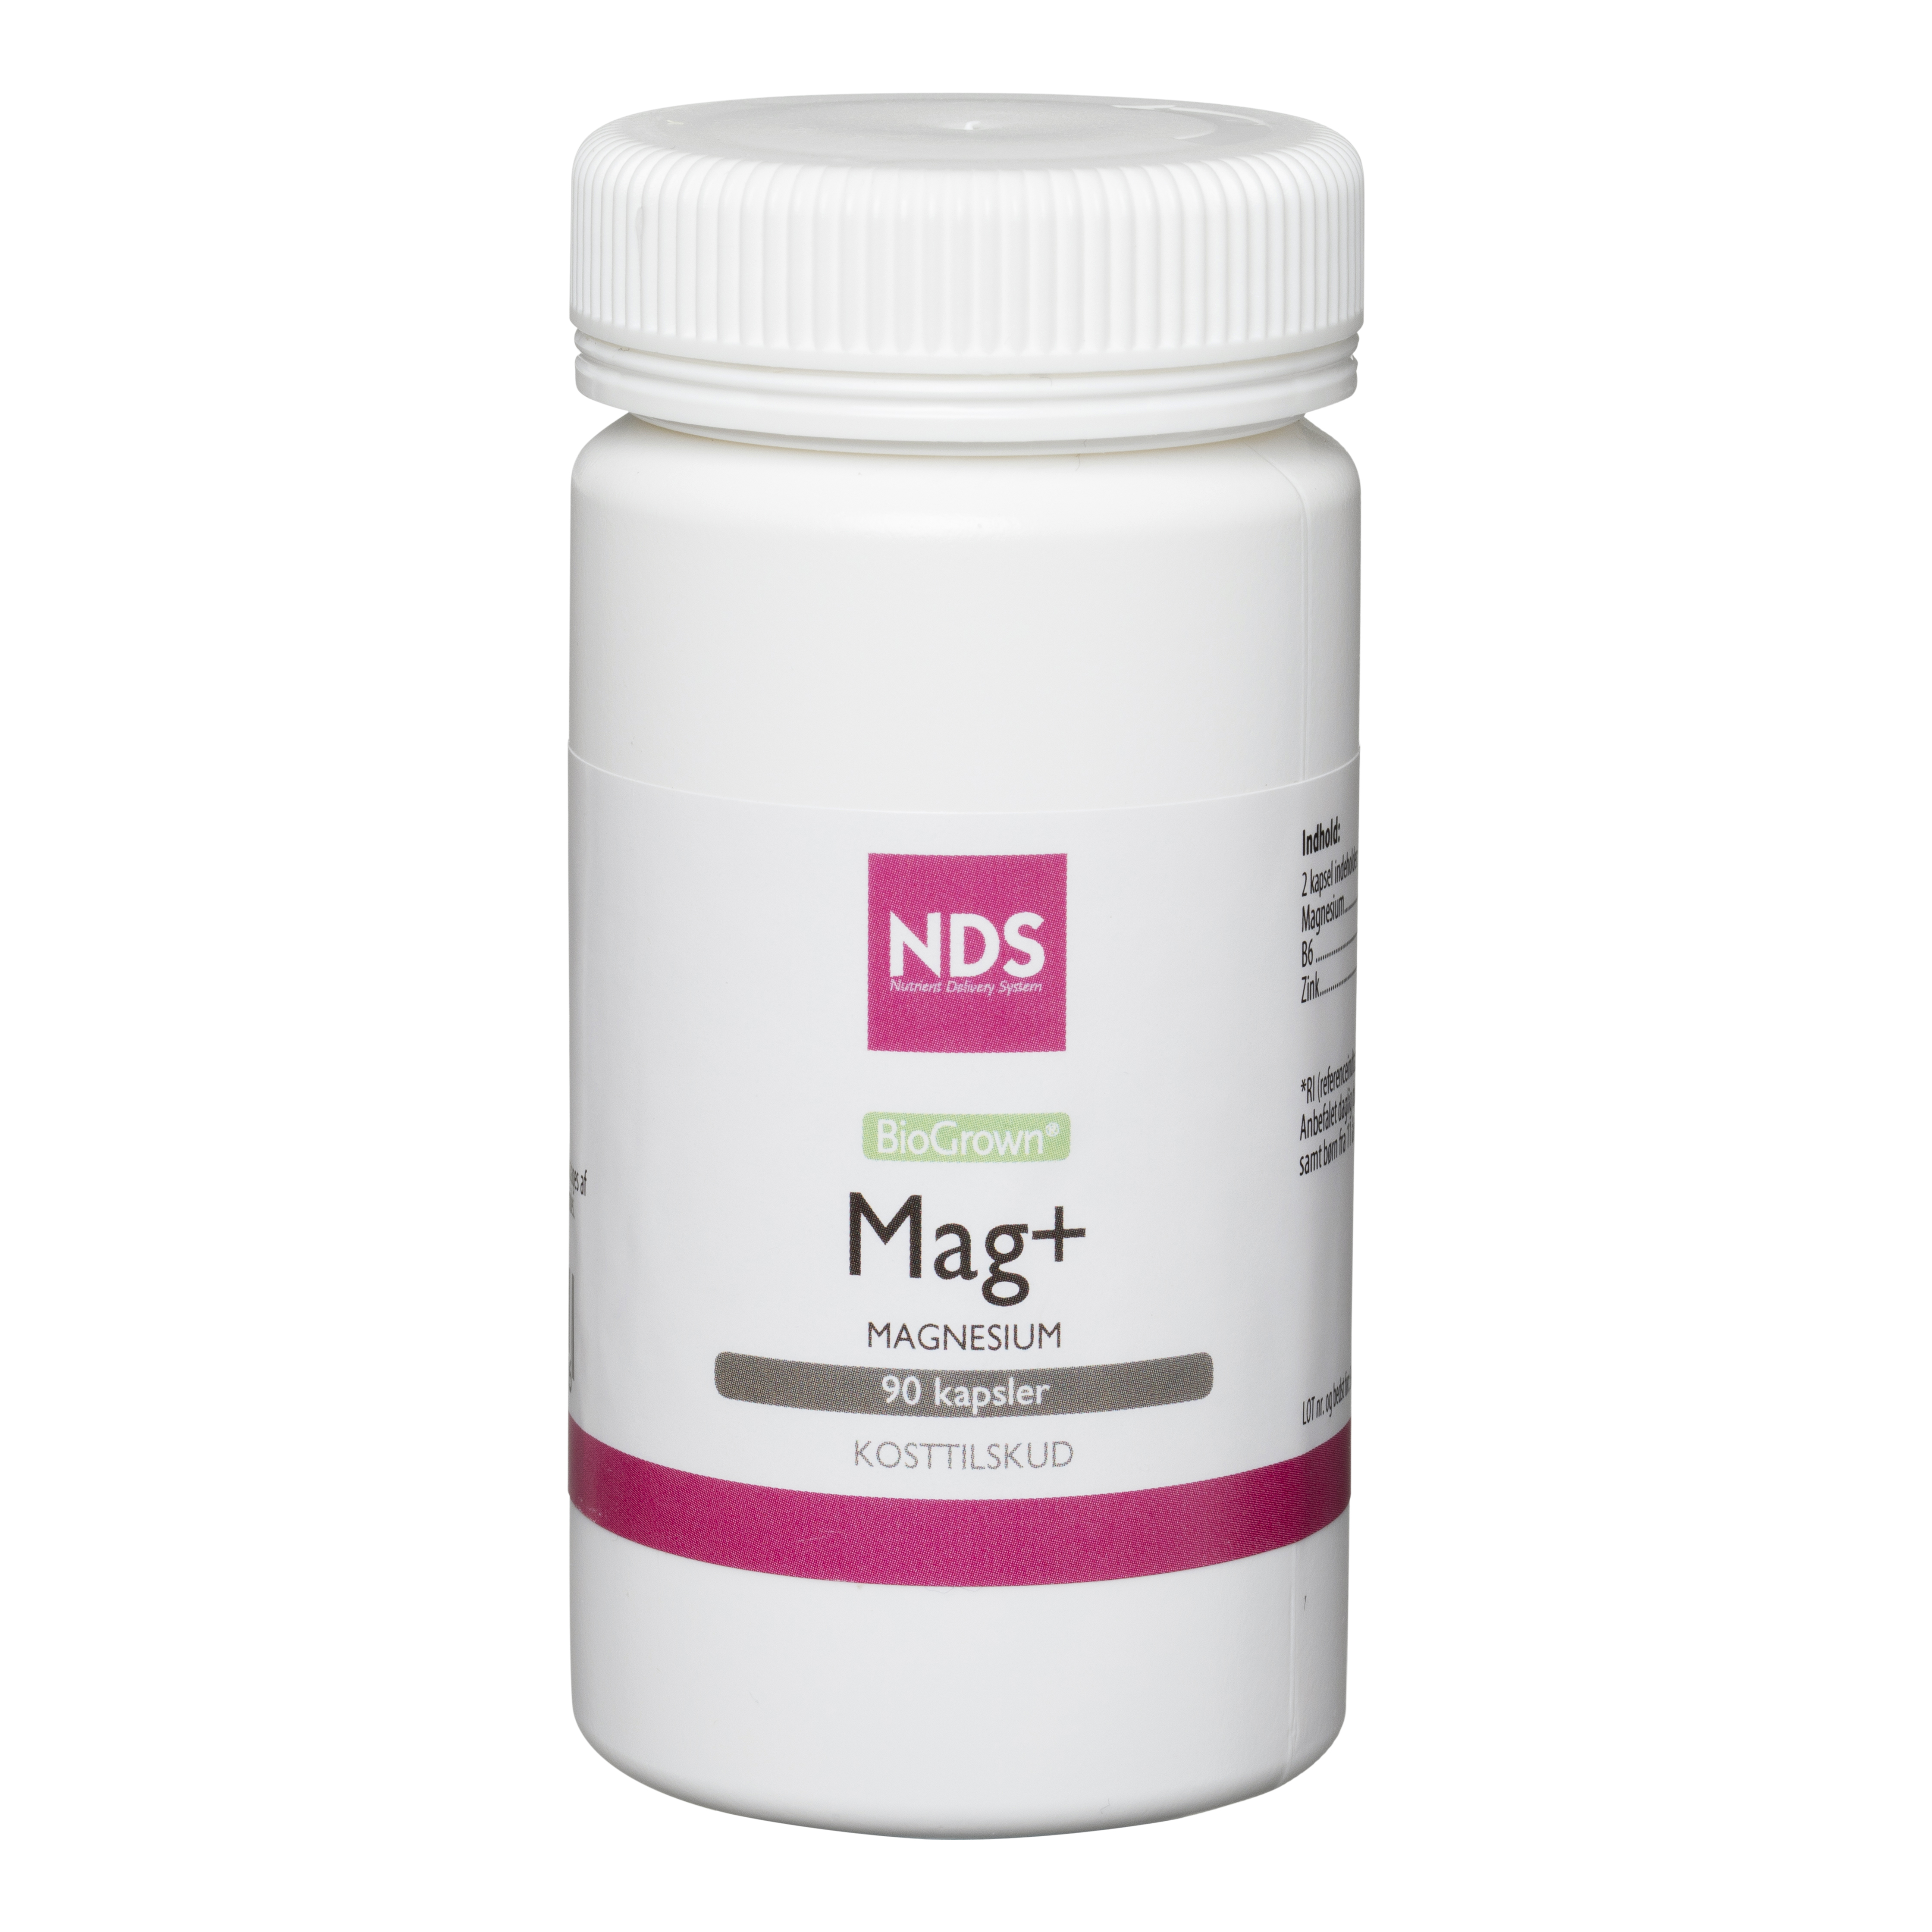 NDS magnesium